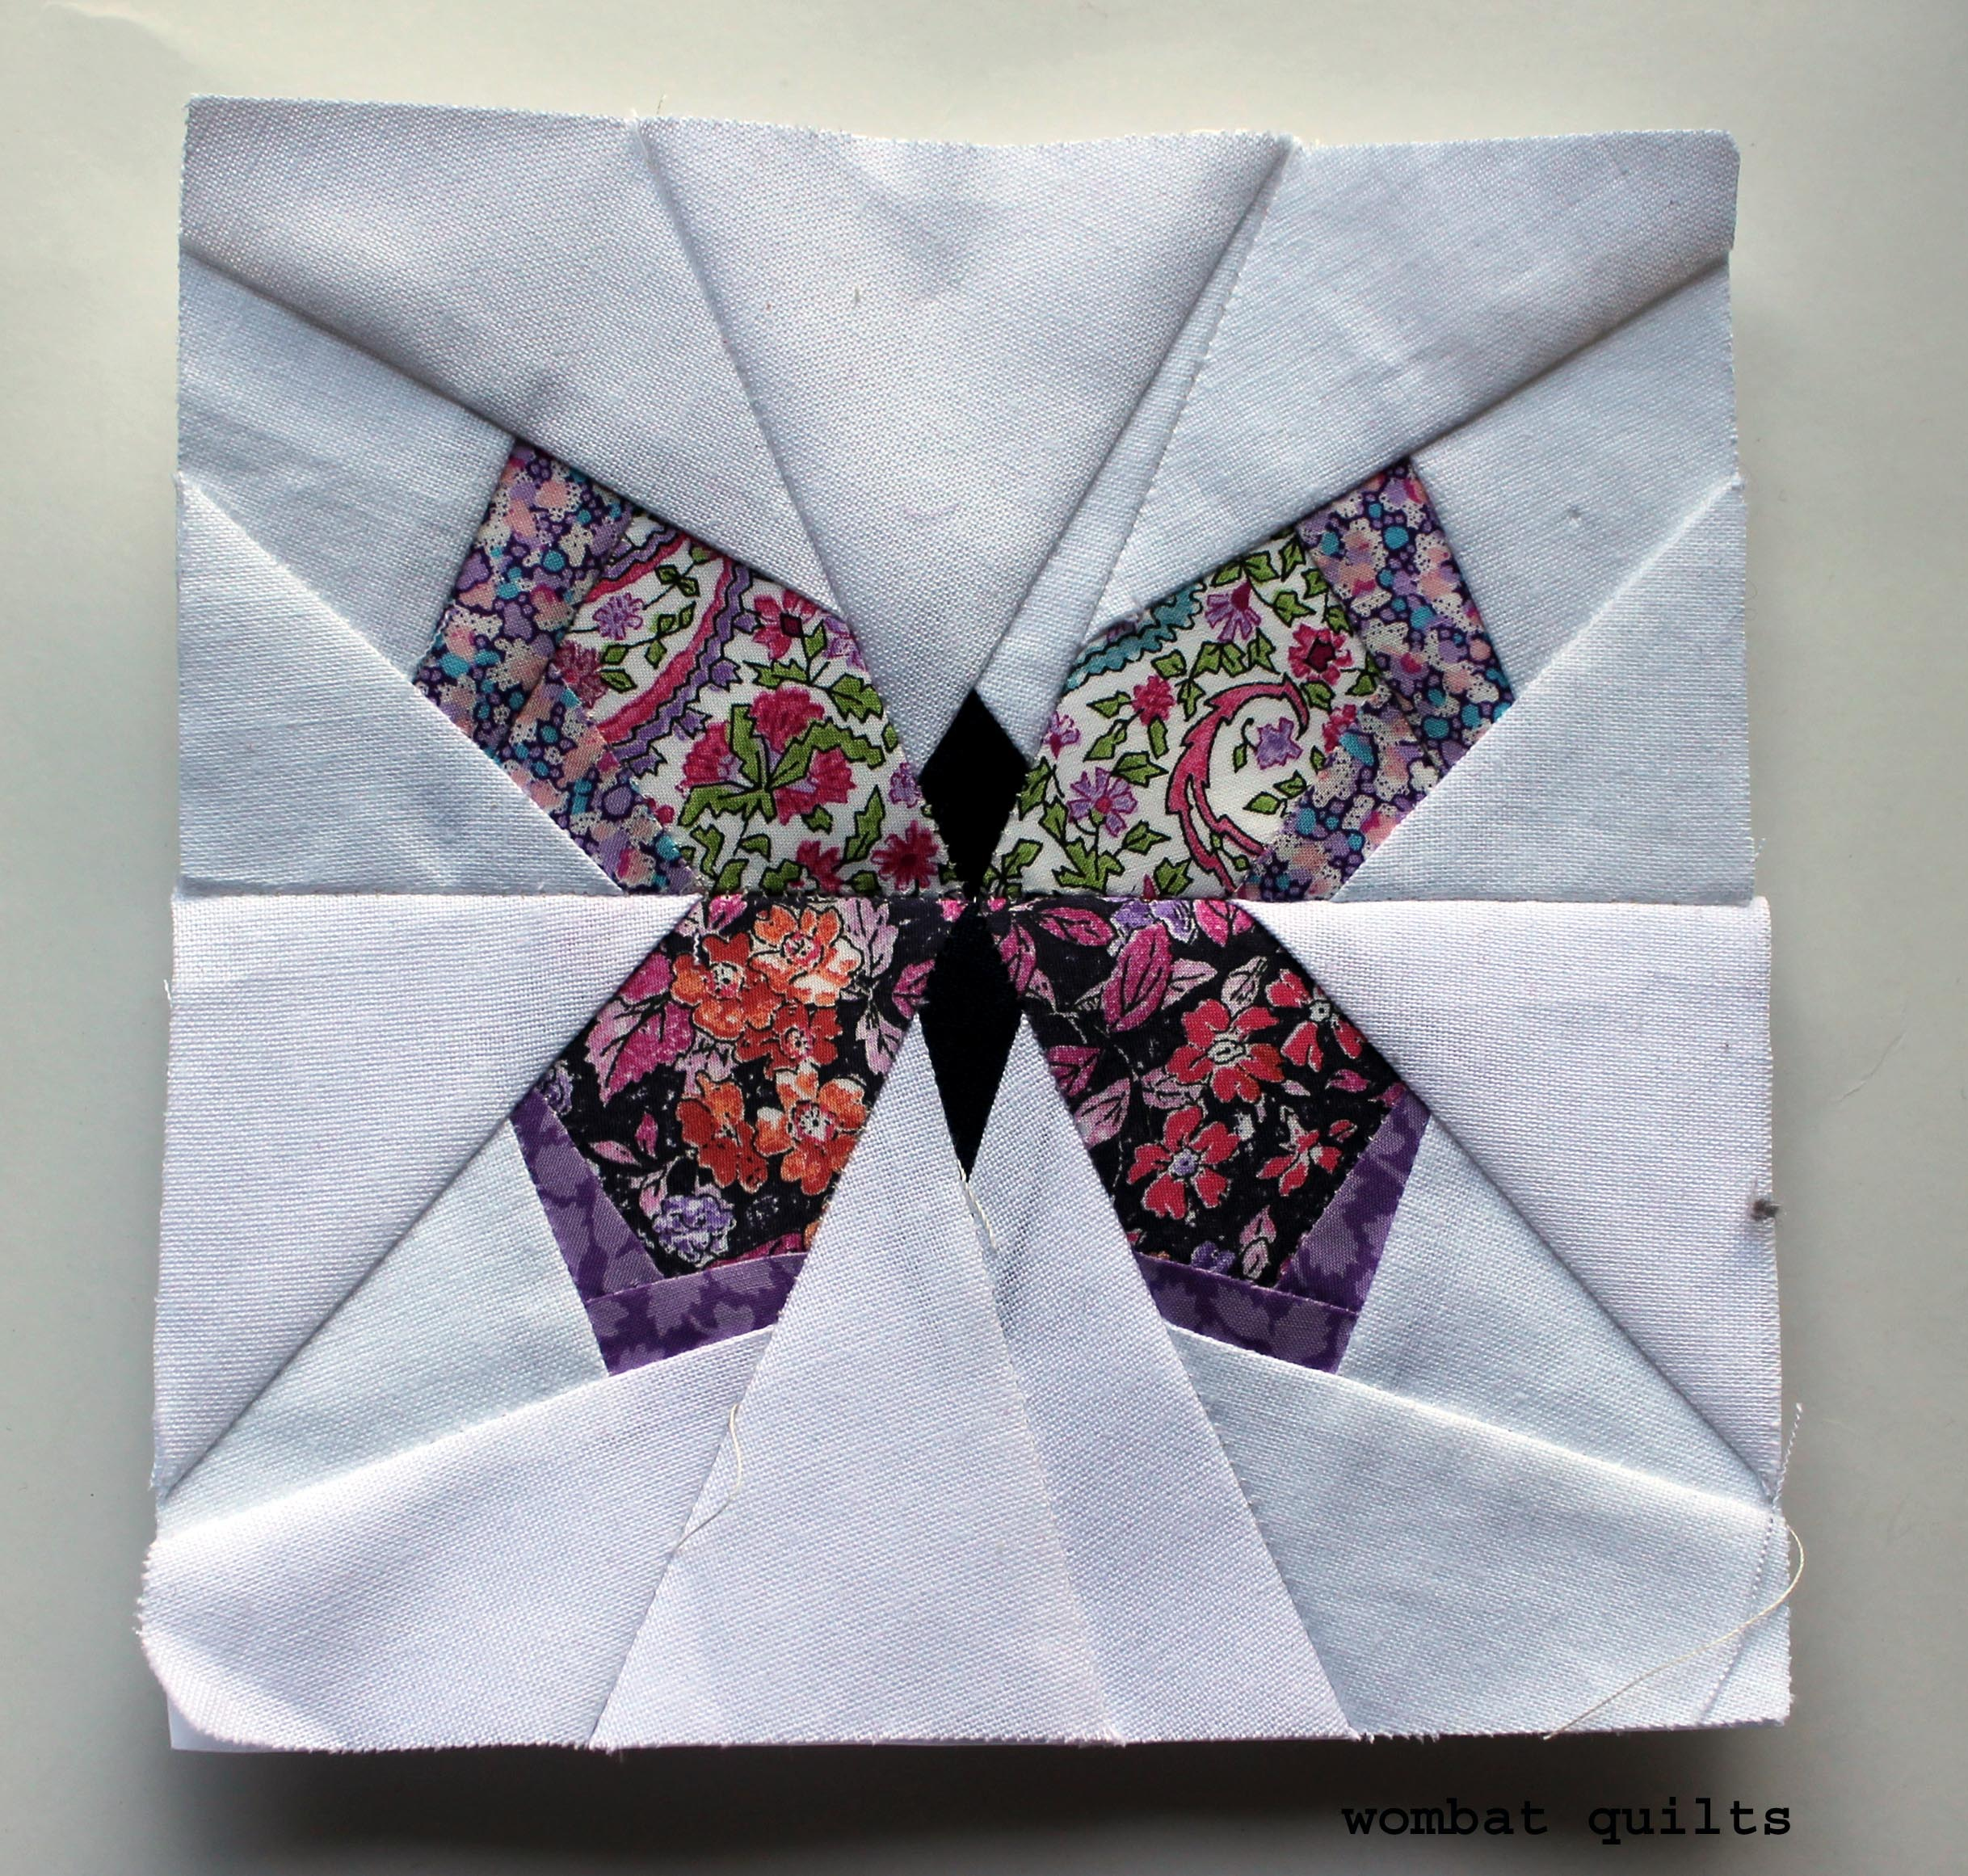 photograph about Free Printable Paper Piecing Patterns for Quilting known as Totally free Paper Piecing Types WOMBAT QUILTS